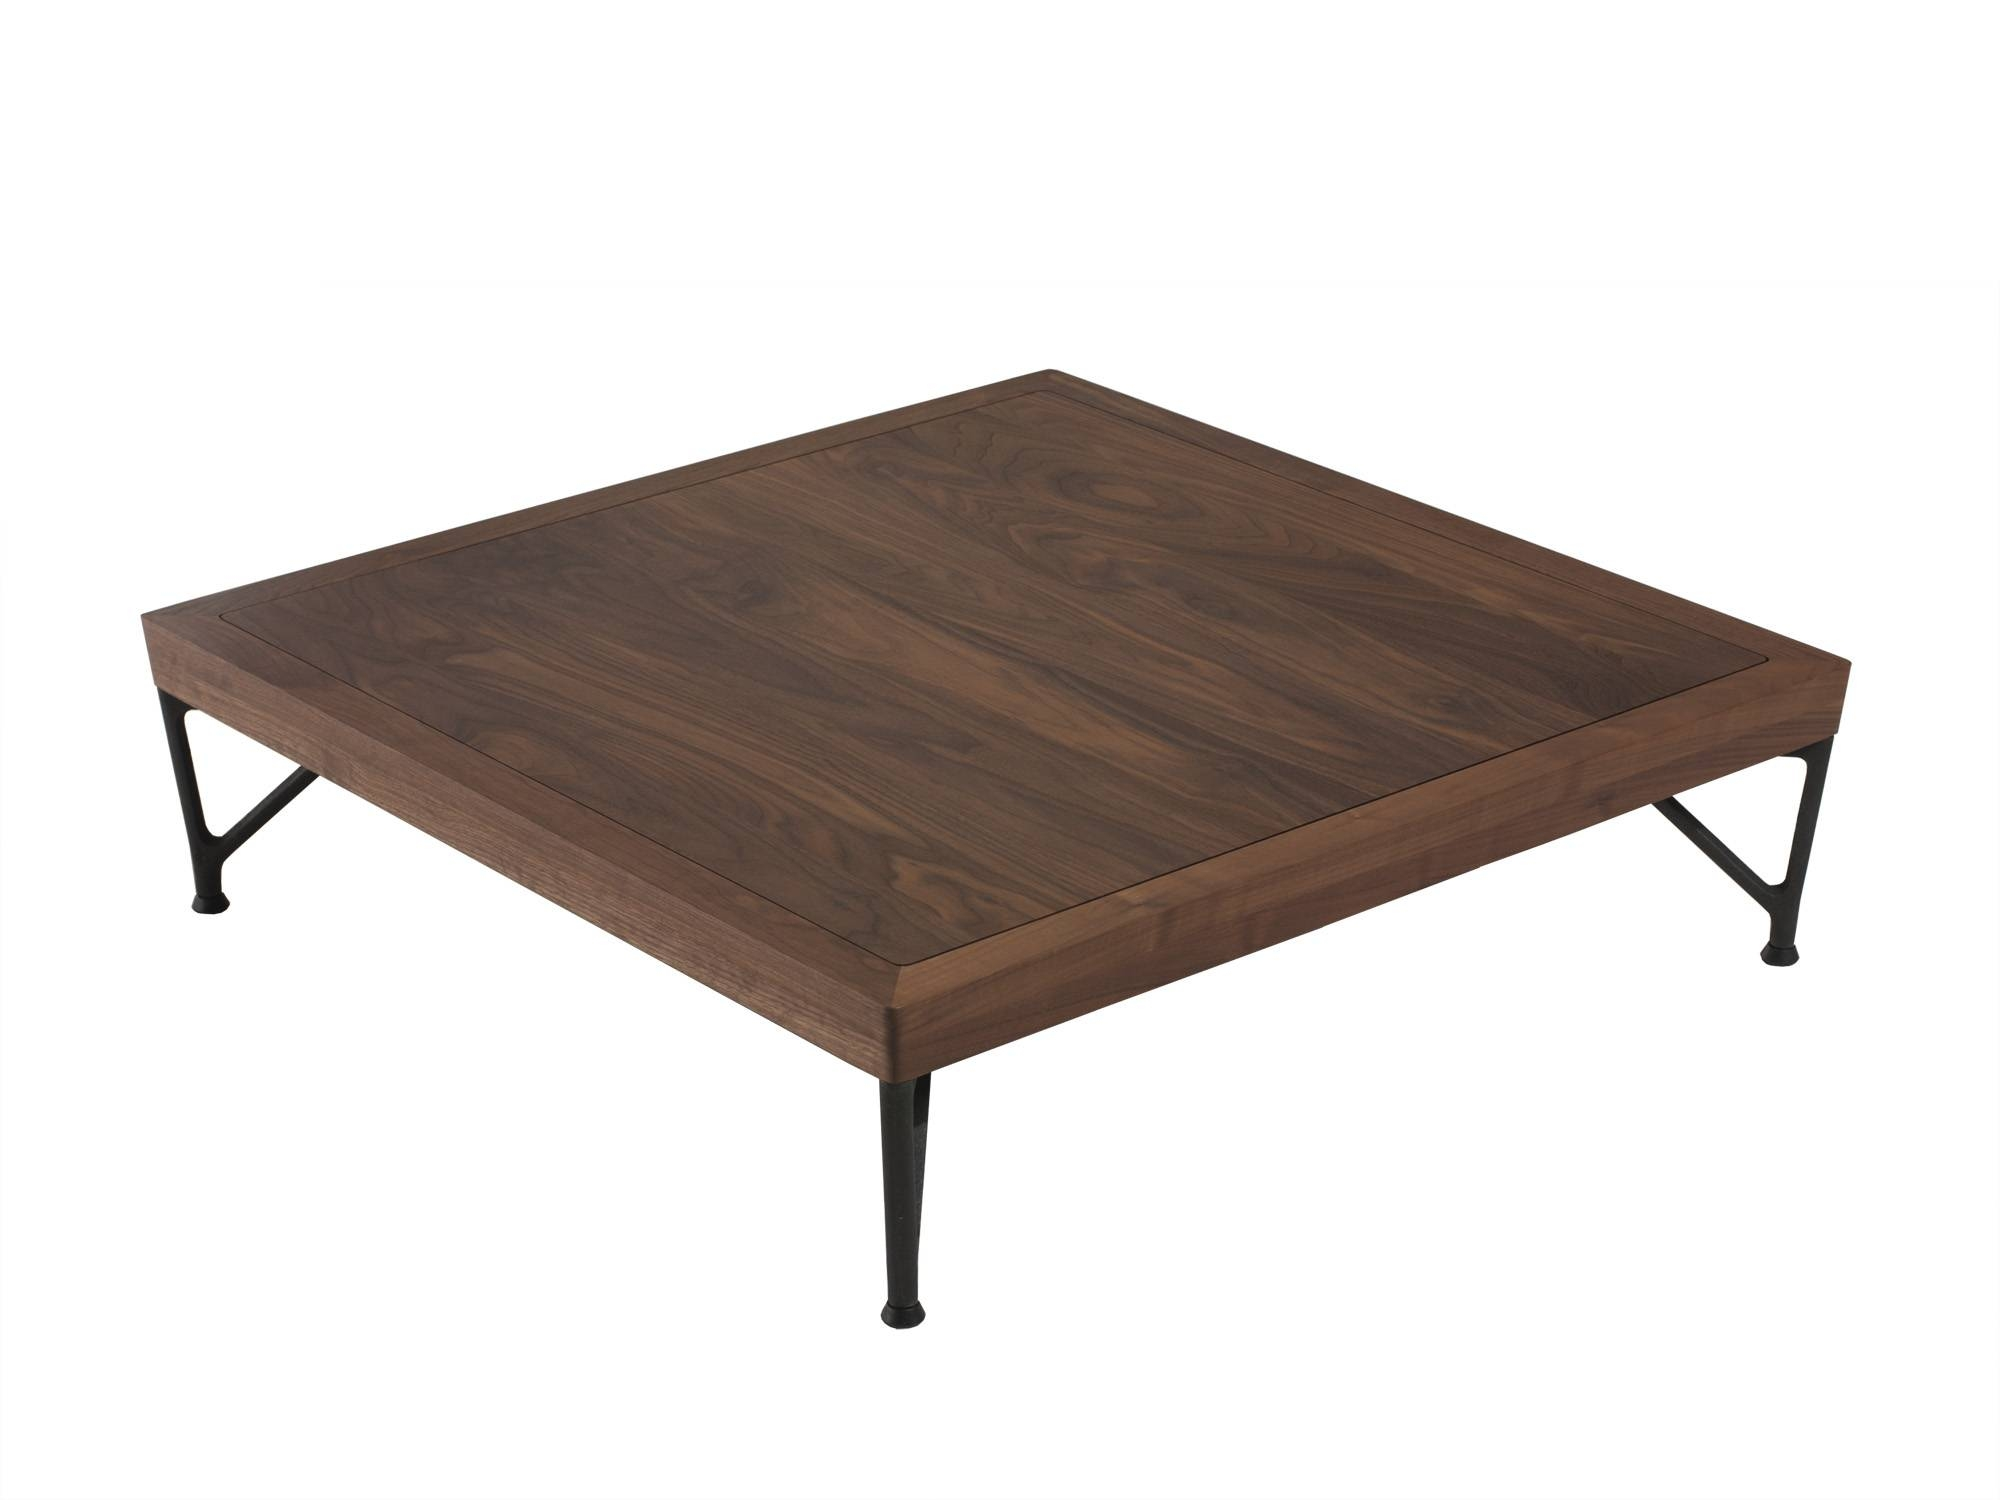 Best 30 of Square Low Coffee Tables